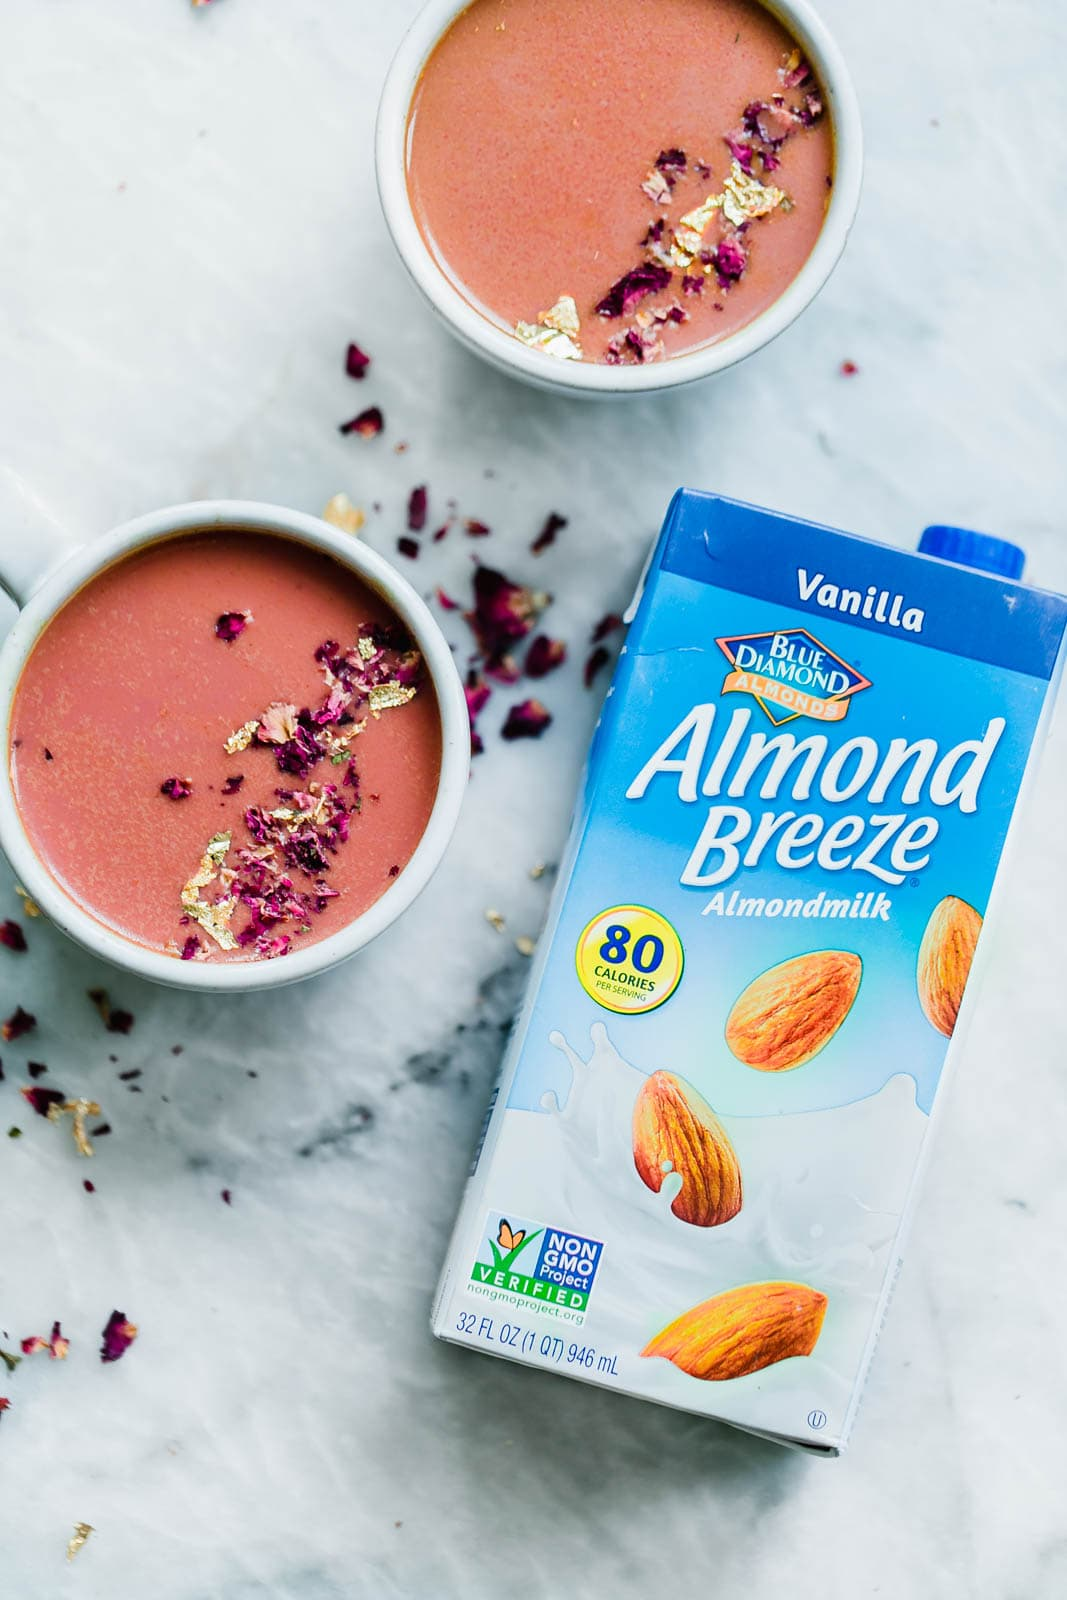 Elevate your bedtime routine with this Pink Moon Milk fit for a princess. Made with vanilla almondmilk, beetroot, turmeric, agave, dried rose hips, and edible gold.